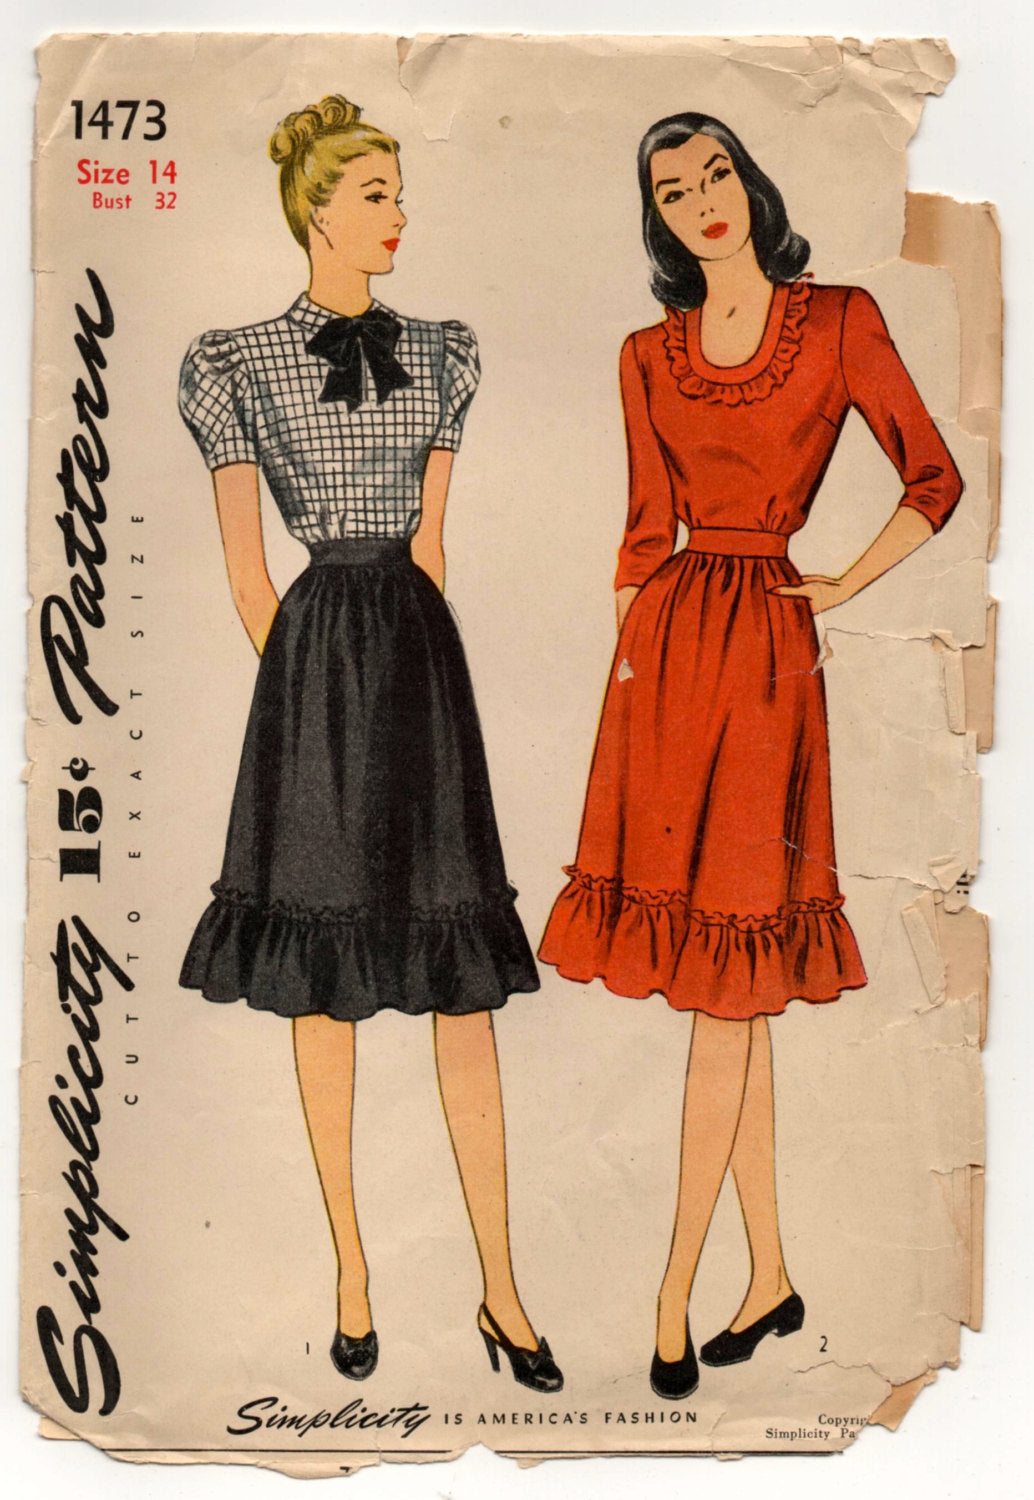 1940's Simplicity One-PIece Dress with Bow Detail and Ruffles - Bust 32